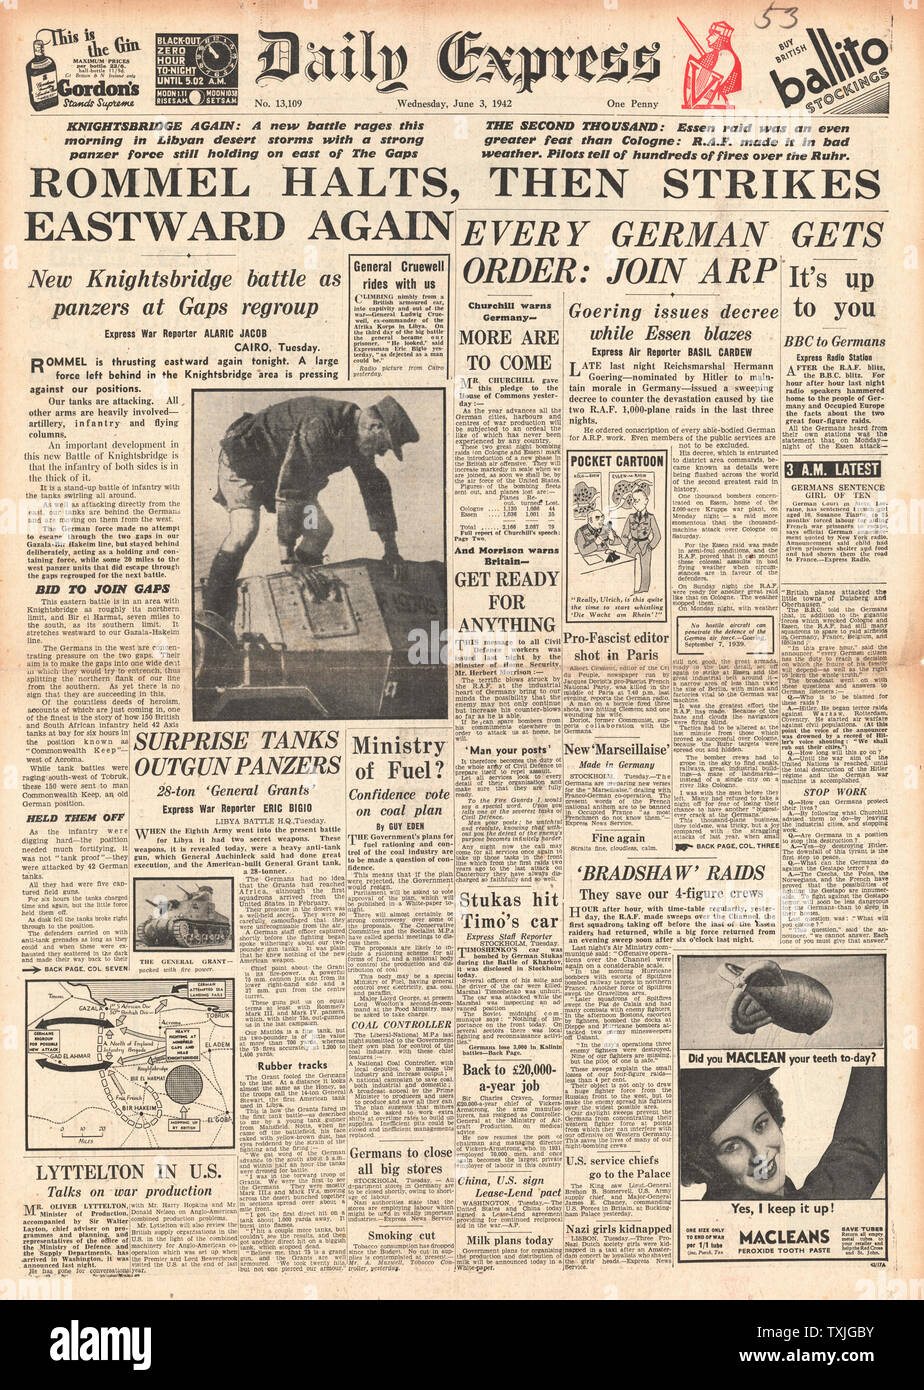 1942 front page Daily Express Battle for Libya and Bombing of Cologne Stock Photo